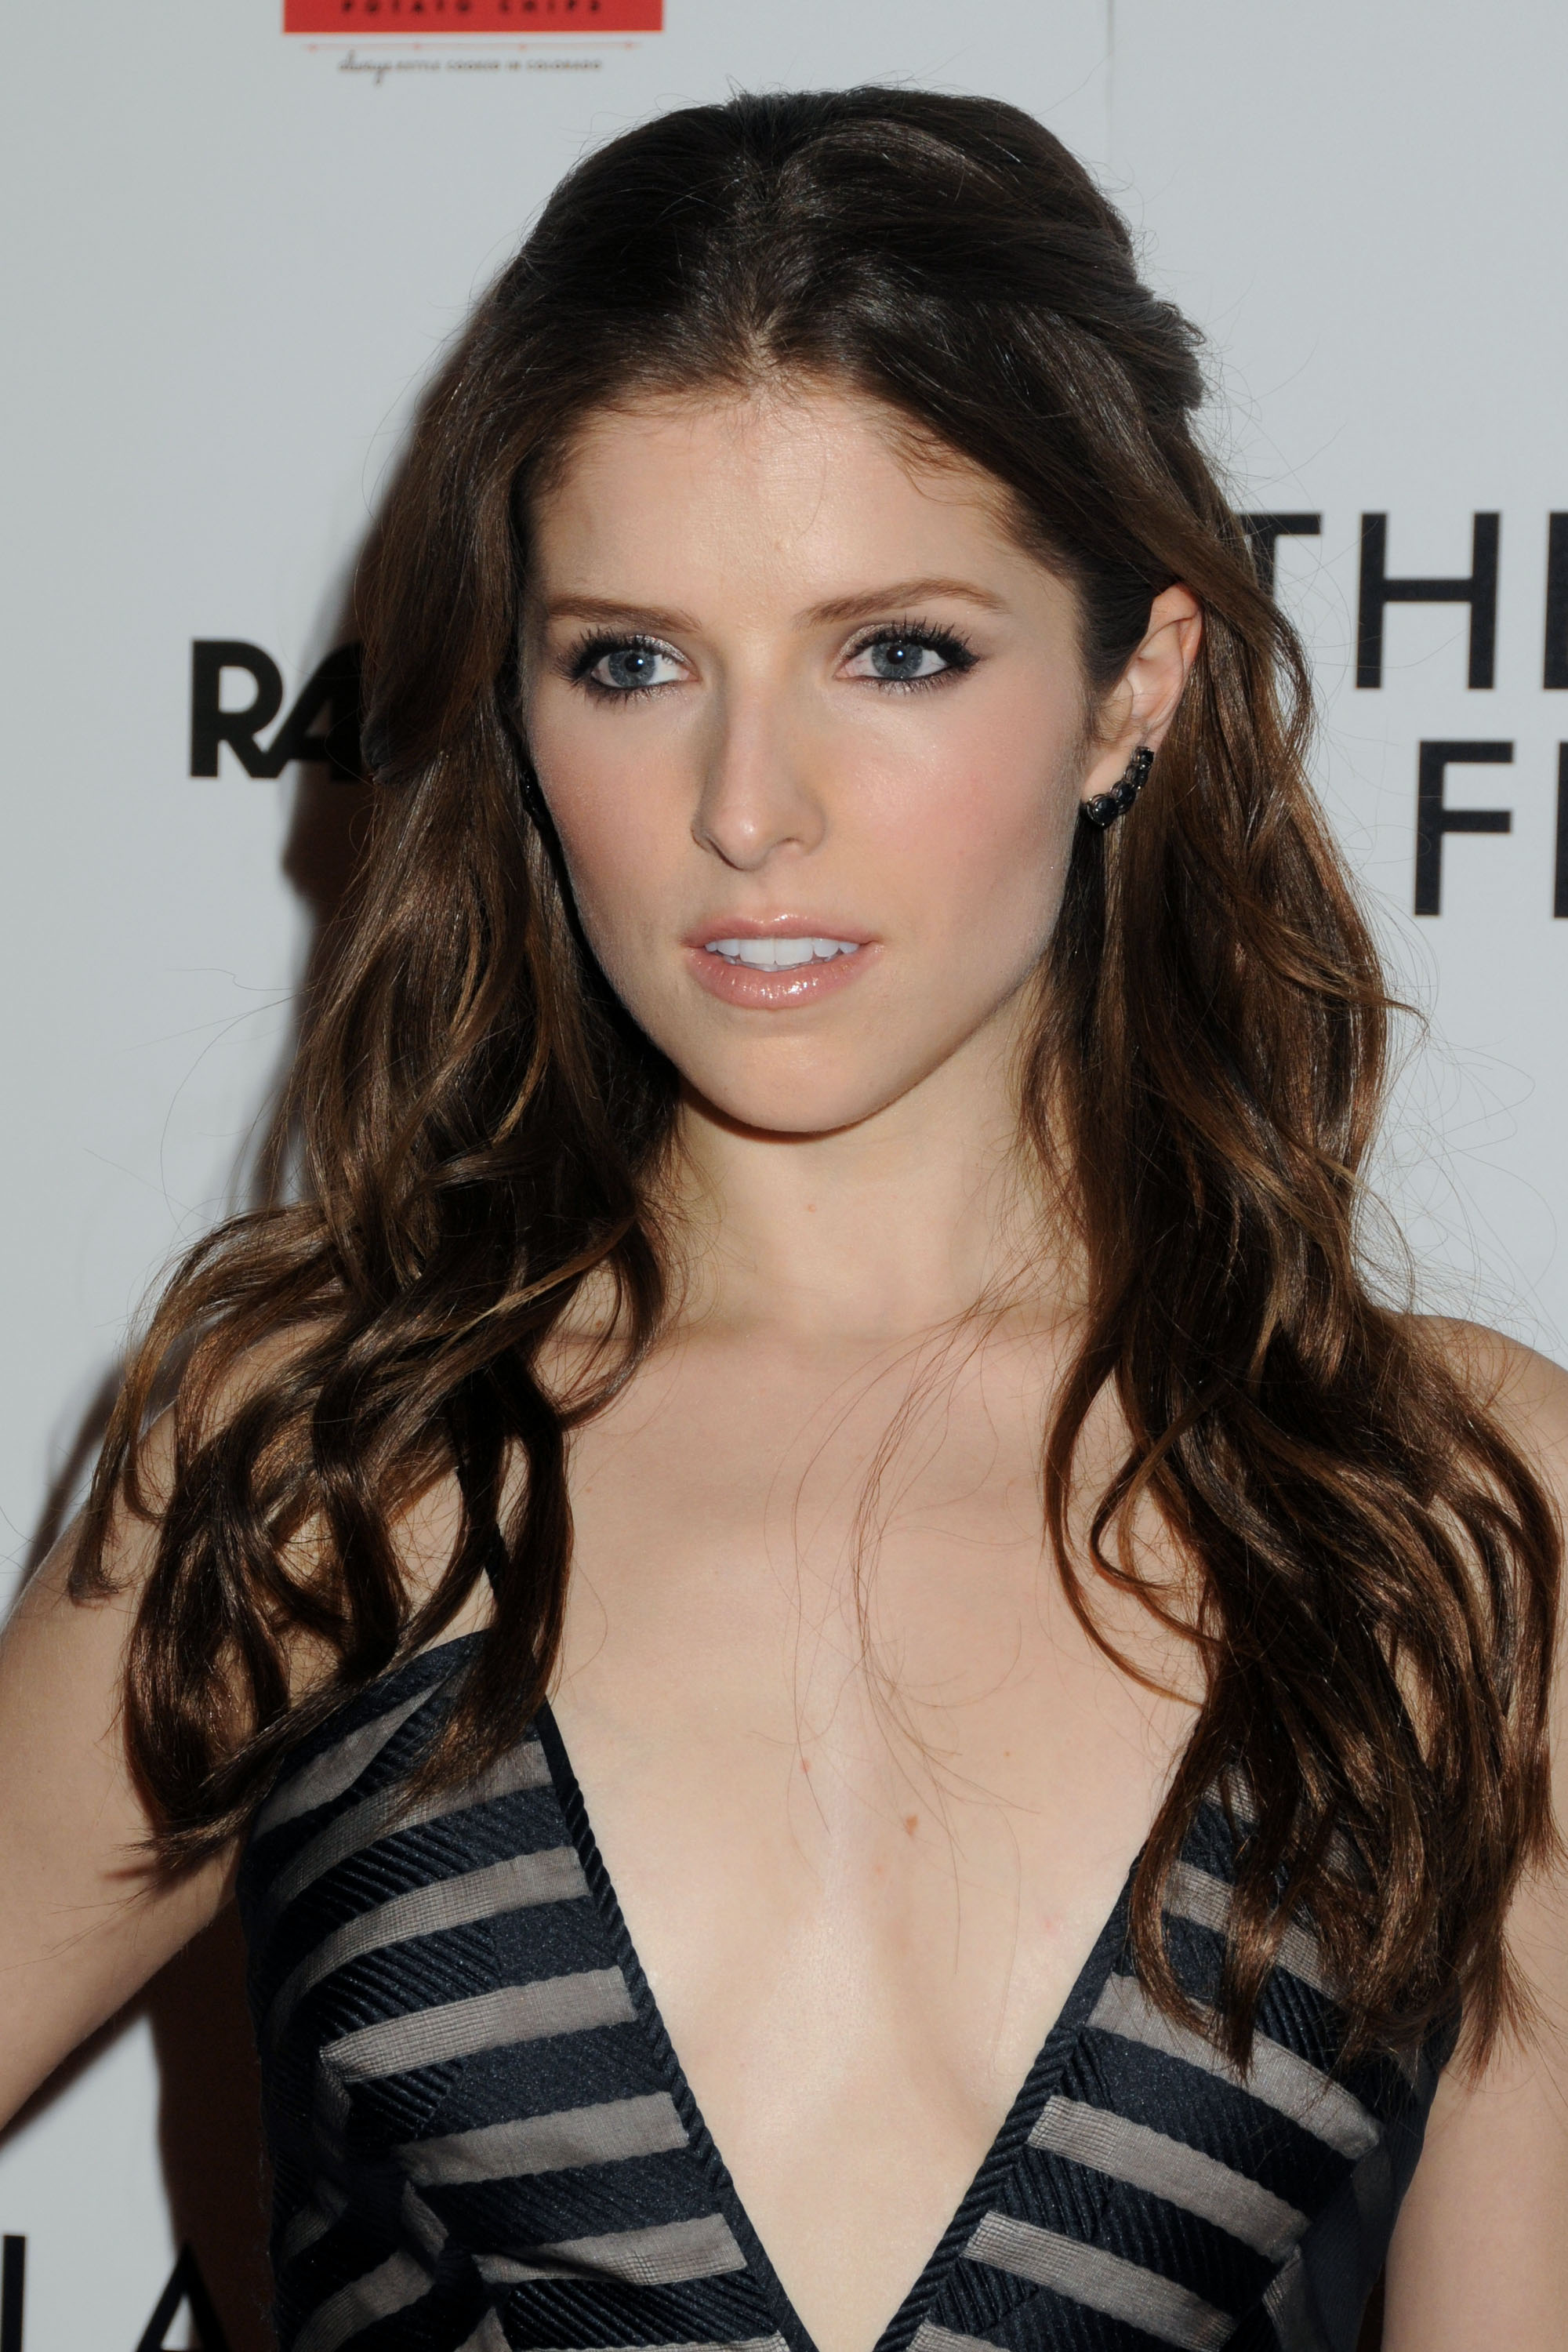 Anna Kendrick Nude In New Movie